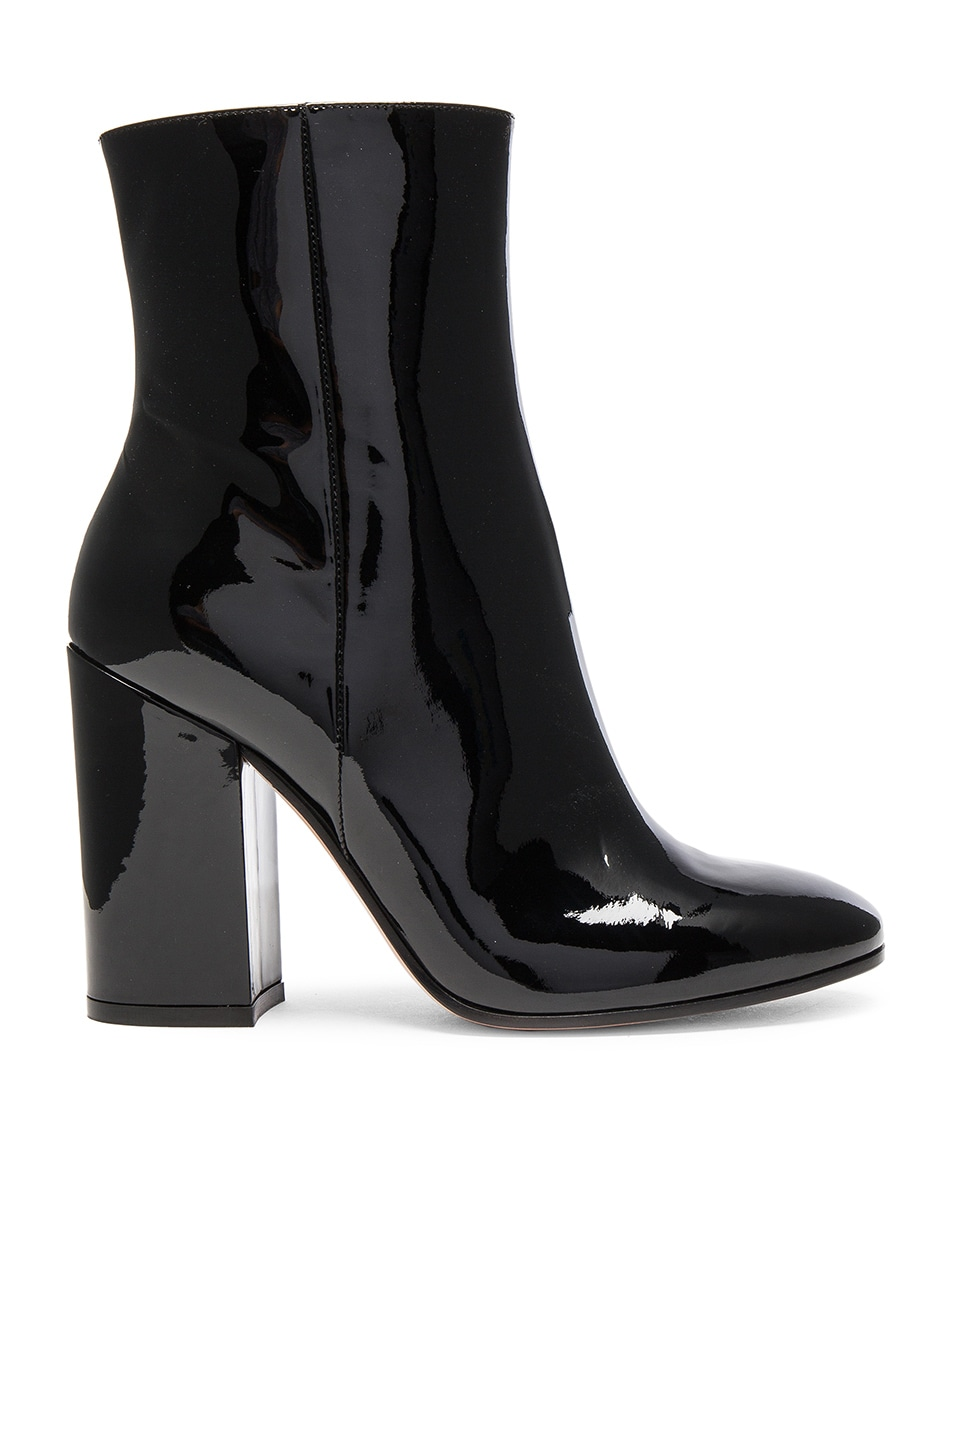 Image 1 of Gianvito Rossi Patent Leather Rolling High Booties in Black